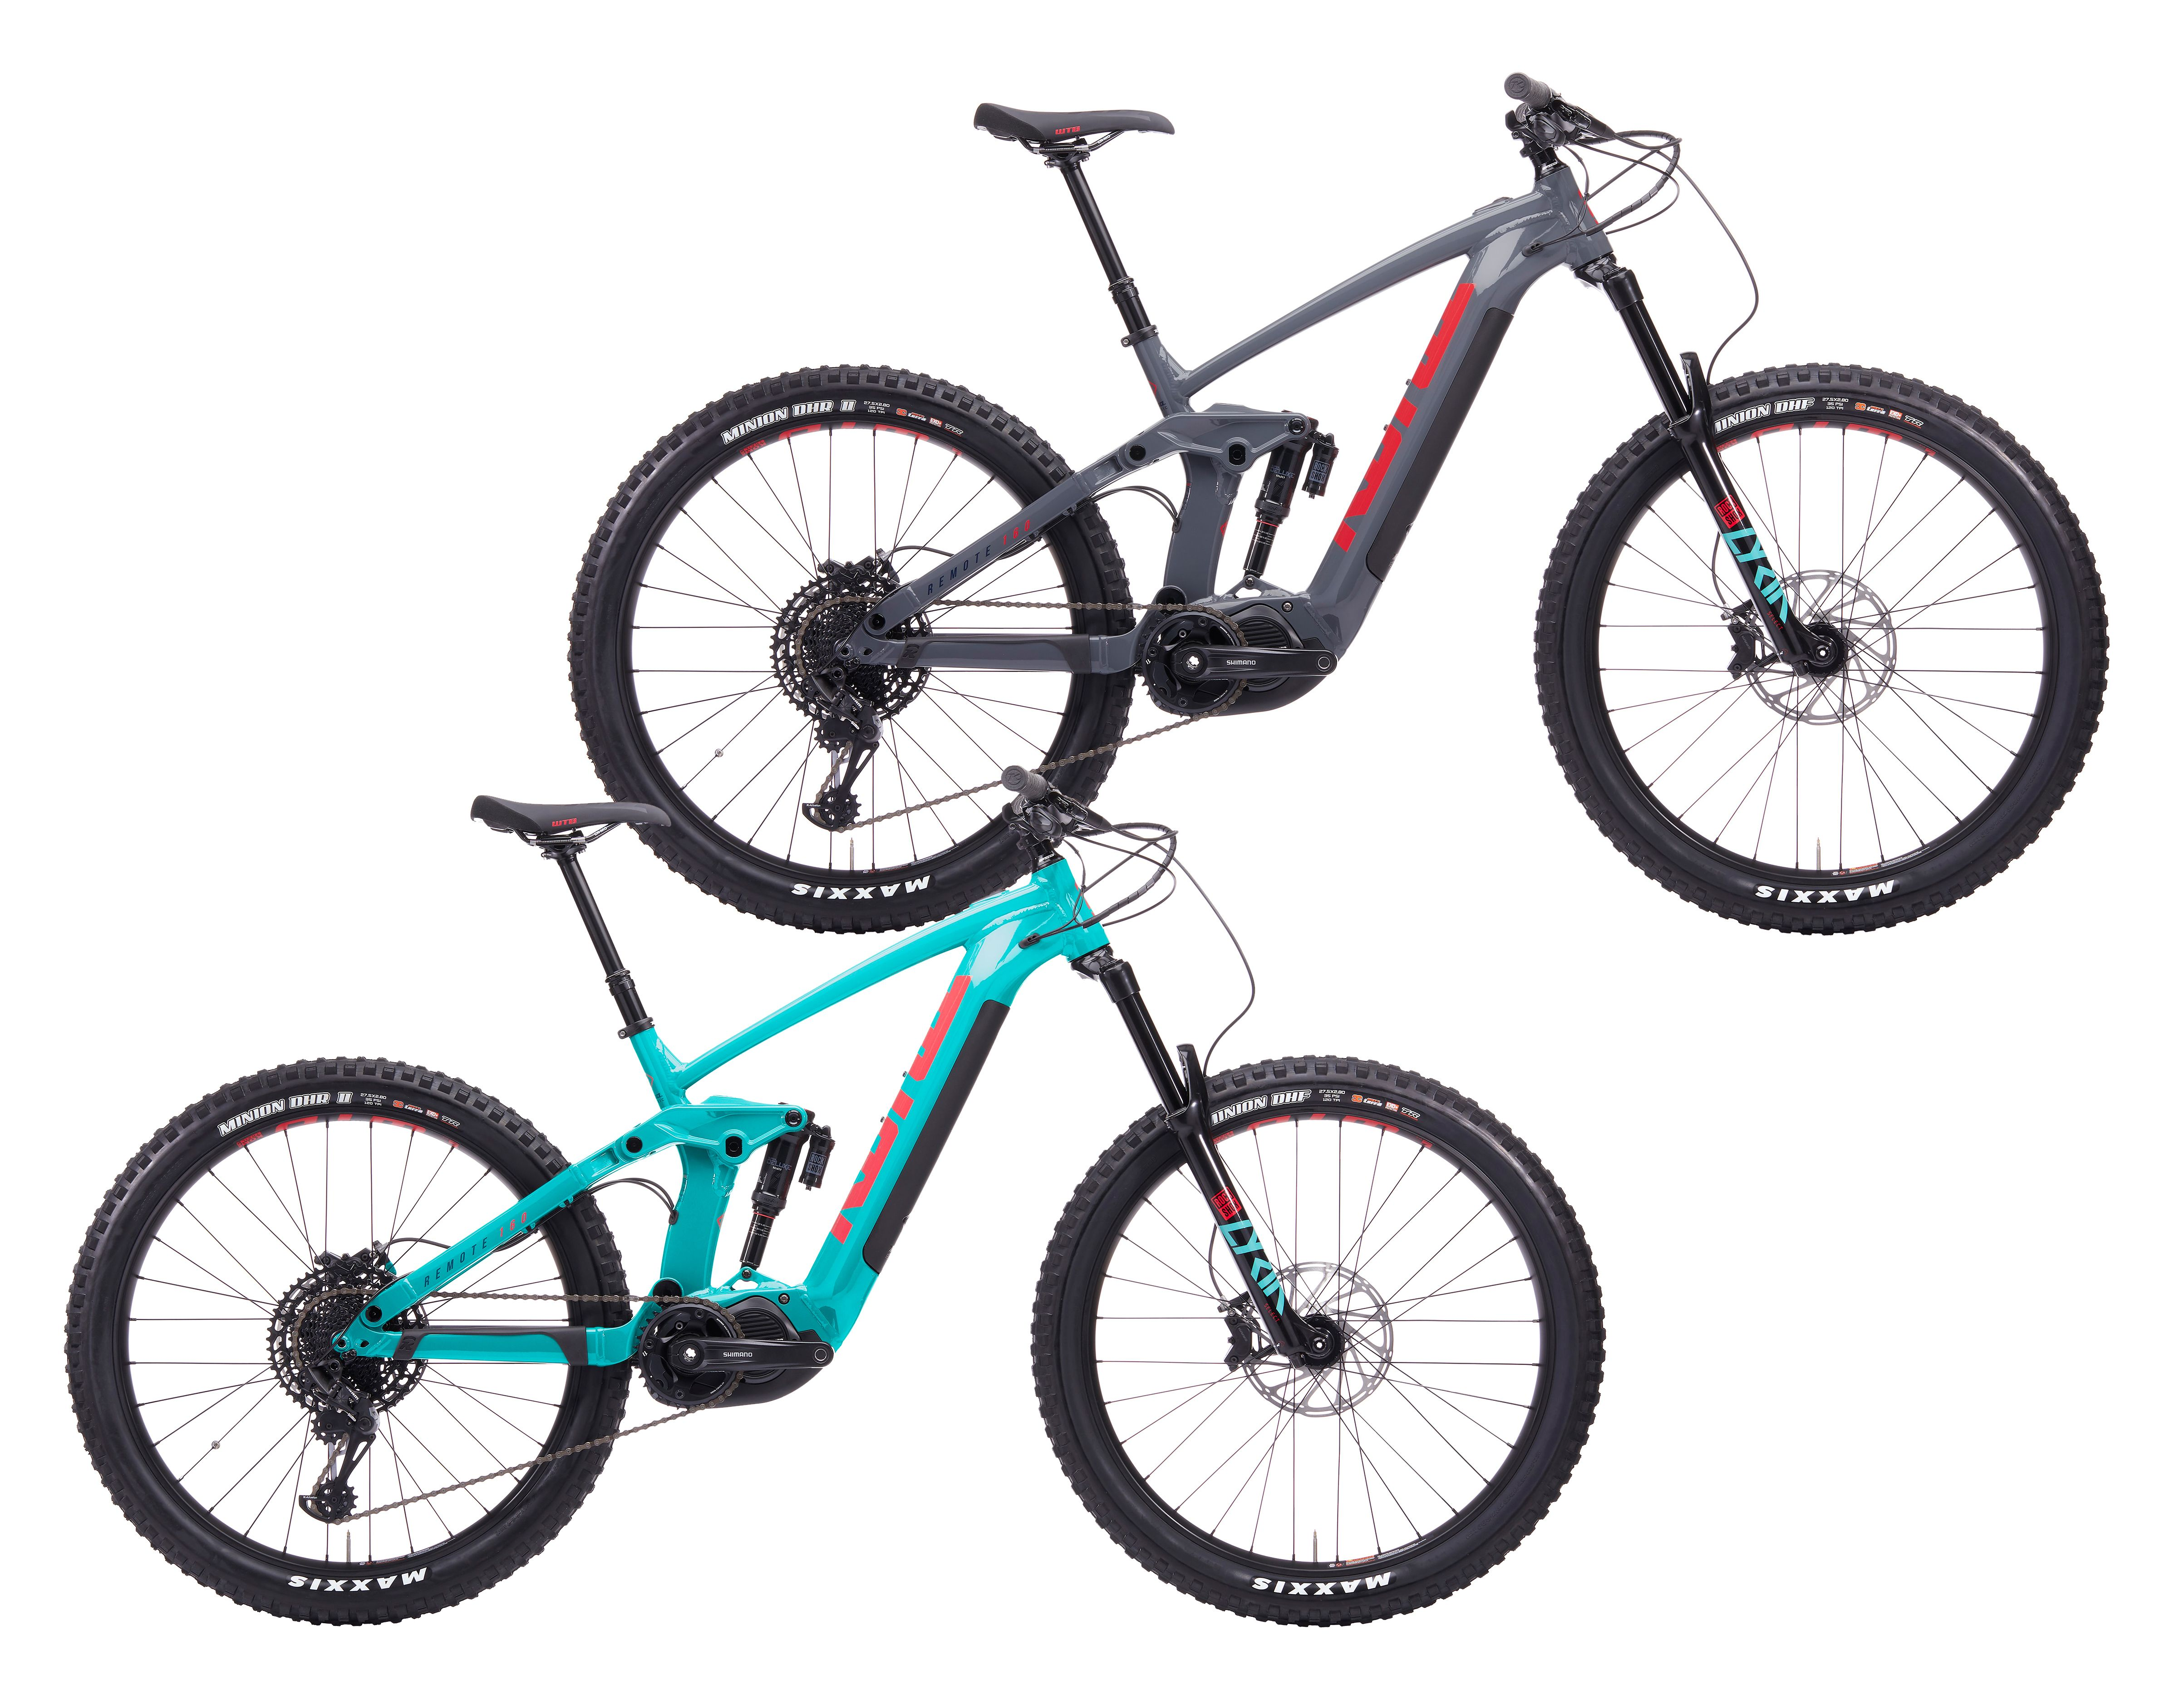 Kona Remote 160 650b Electric Mountain Bike 2020 | City-cykler